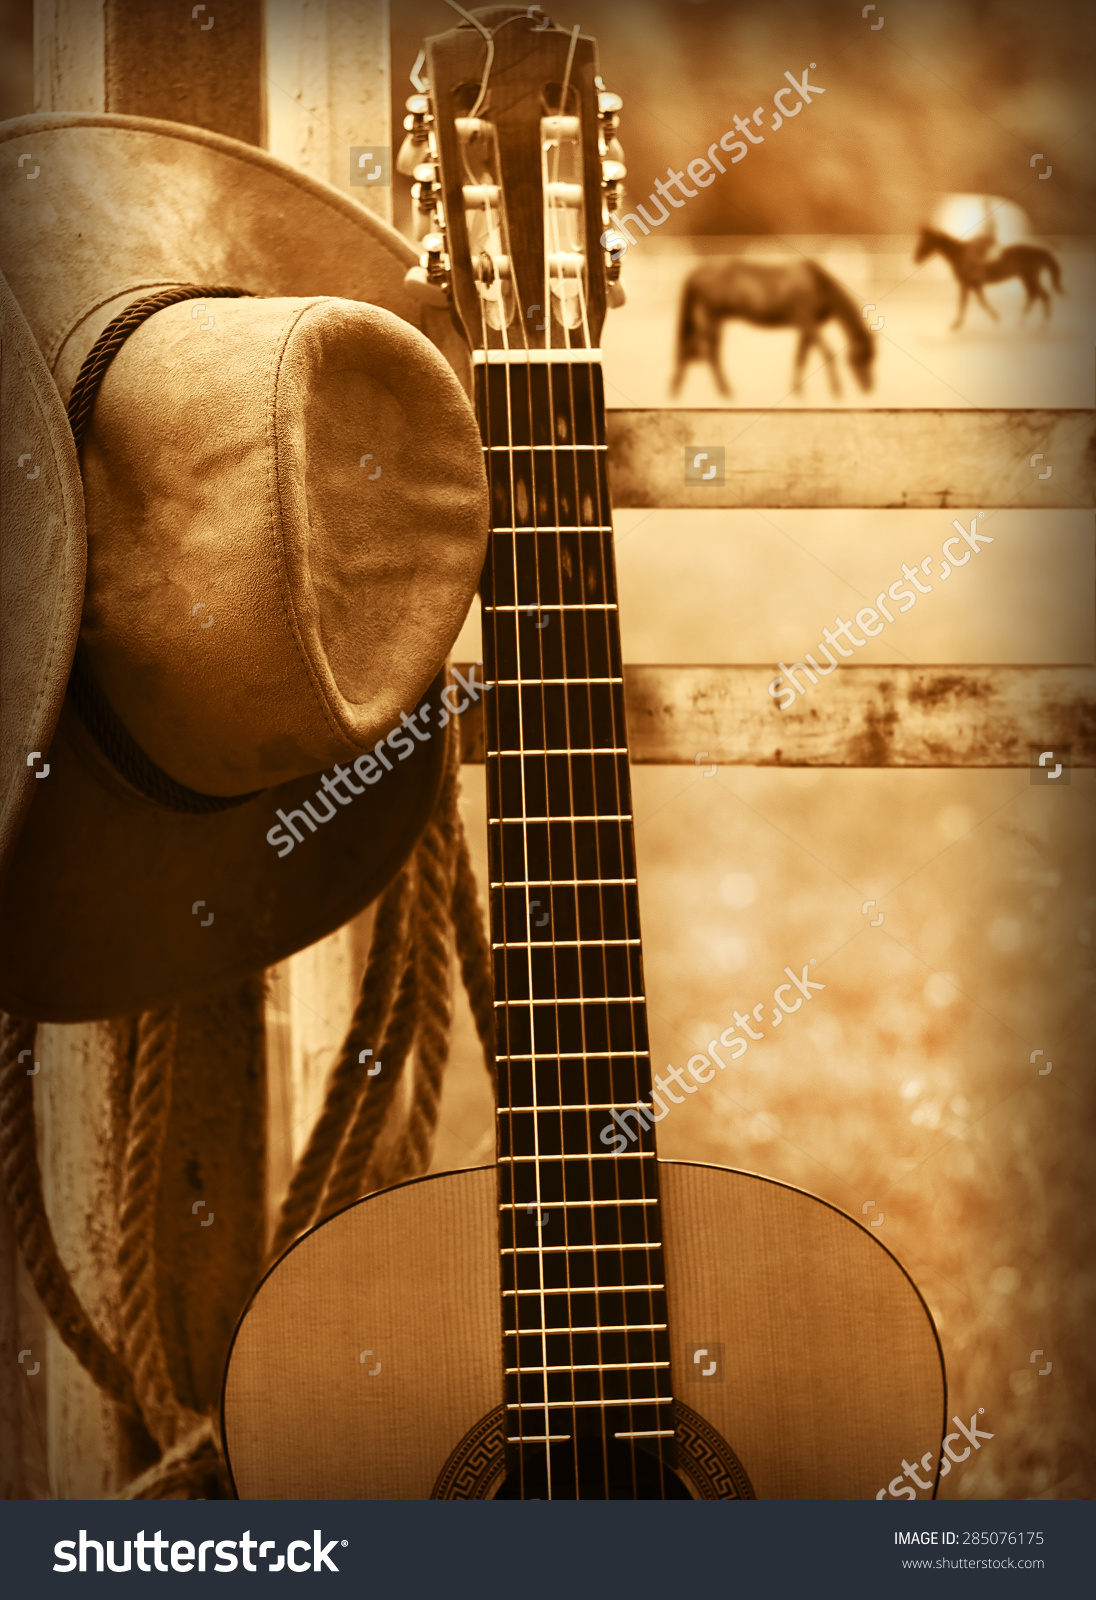 Country Music Wallpaper - WallpaperSafari